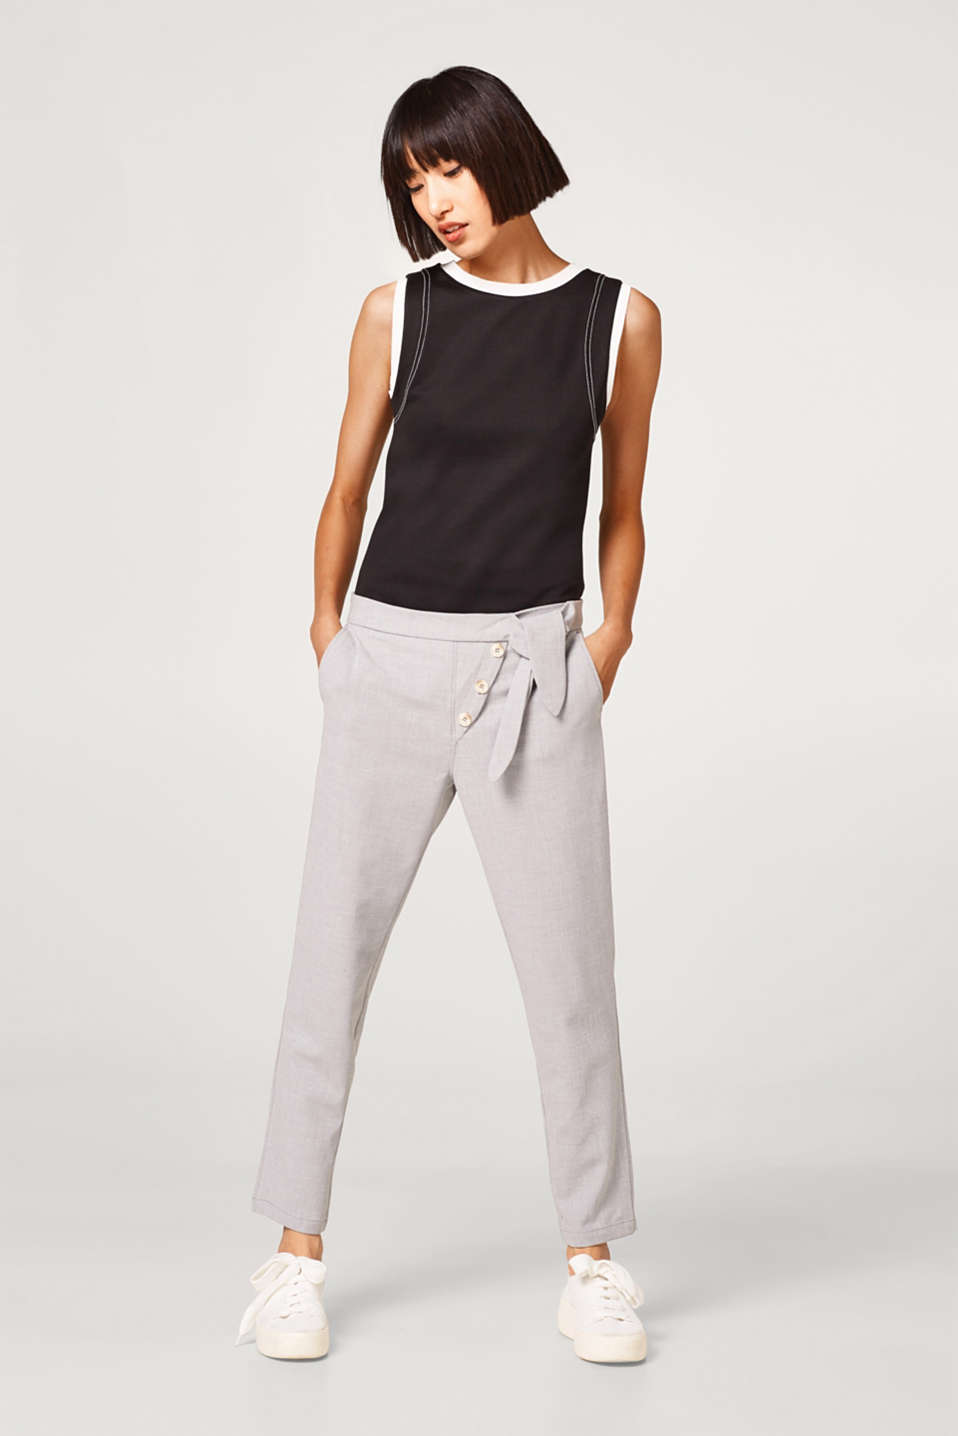 edc - Crêpe trousers with a button placket and knot detail